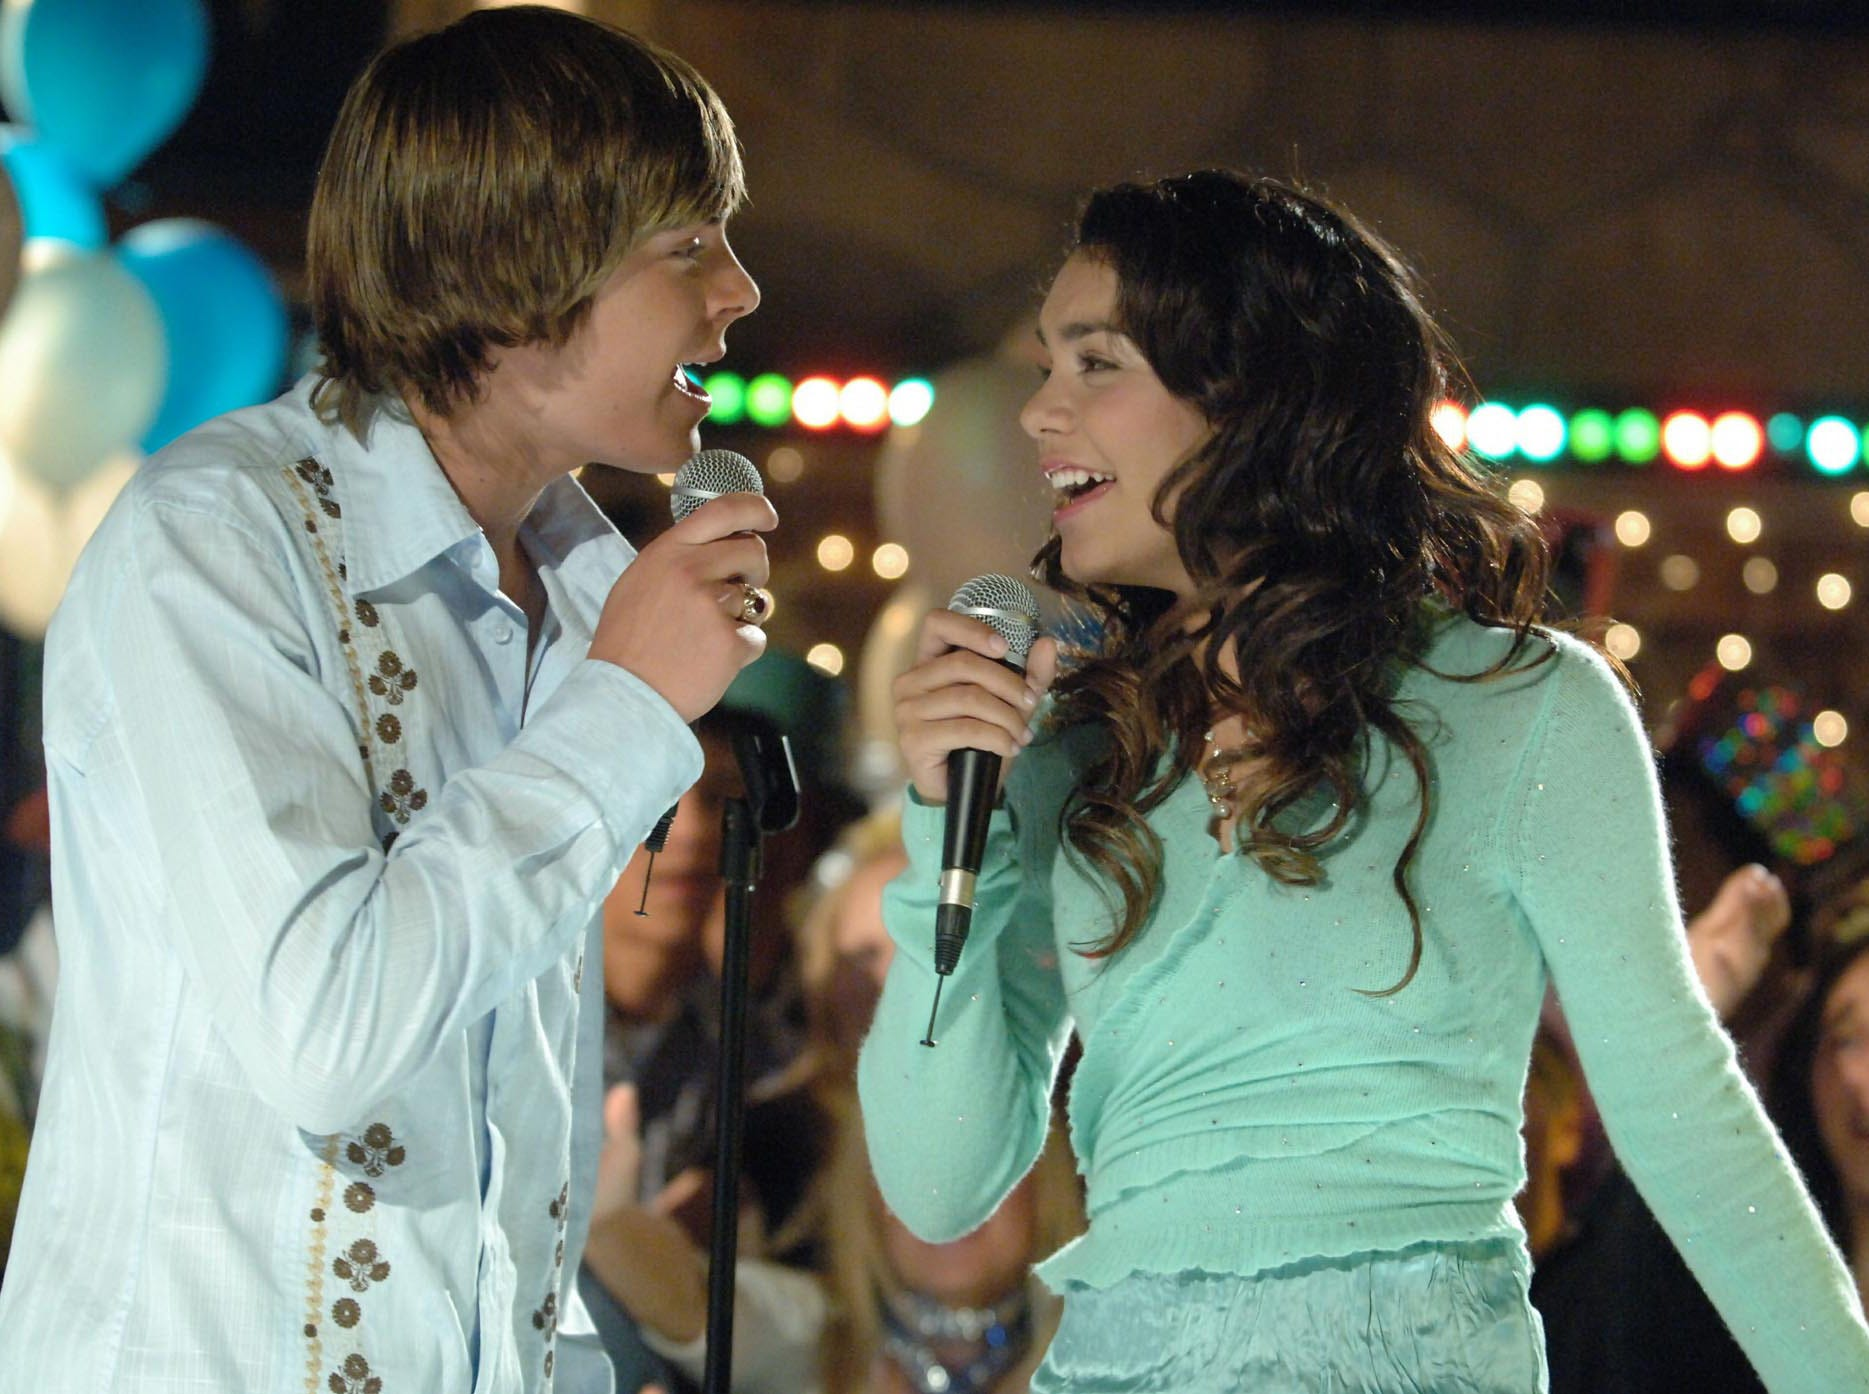 Zac Efron and  Vanessa Anne Hudgens in a scene from High School Musical on Disney Channel --- DATE TAKEN: Unavailable  No Byline   Disney , Source: Paul Lirette 8185697899       HO      - handout   ORG XMIT: ZX44019